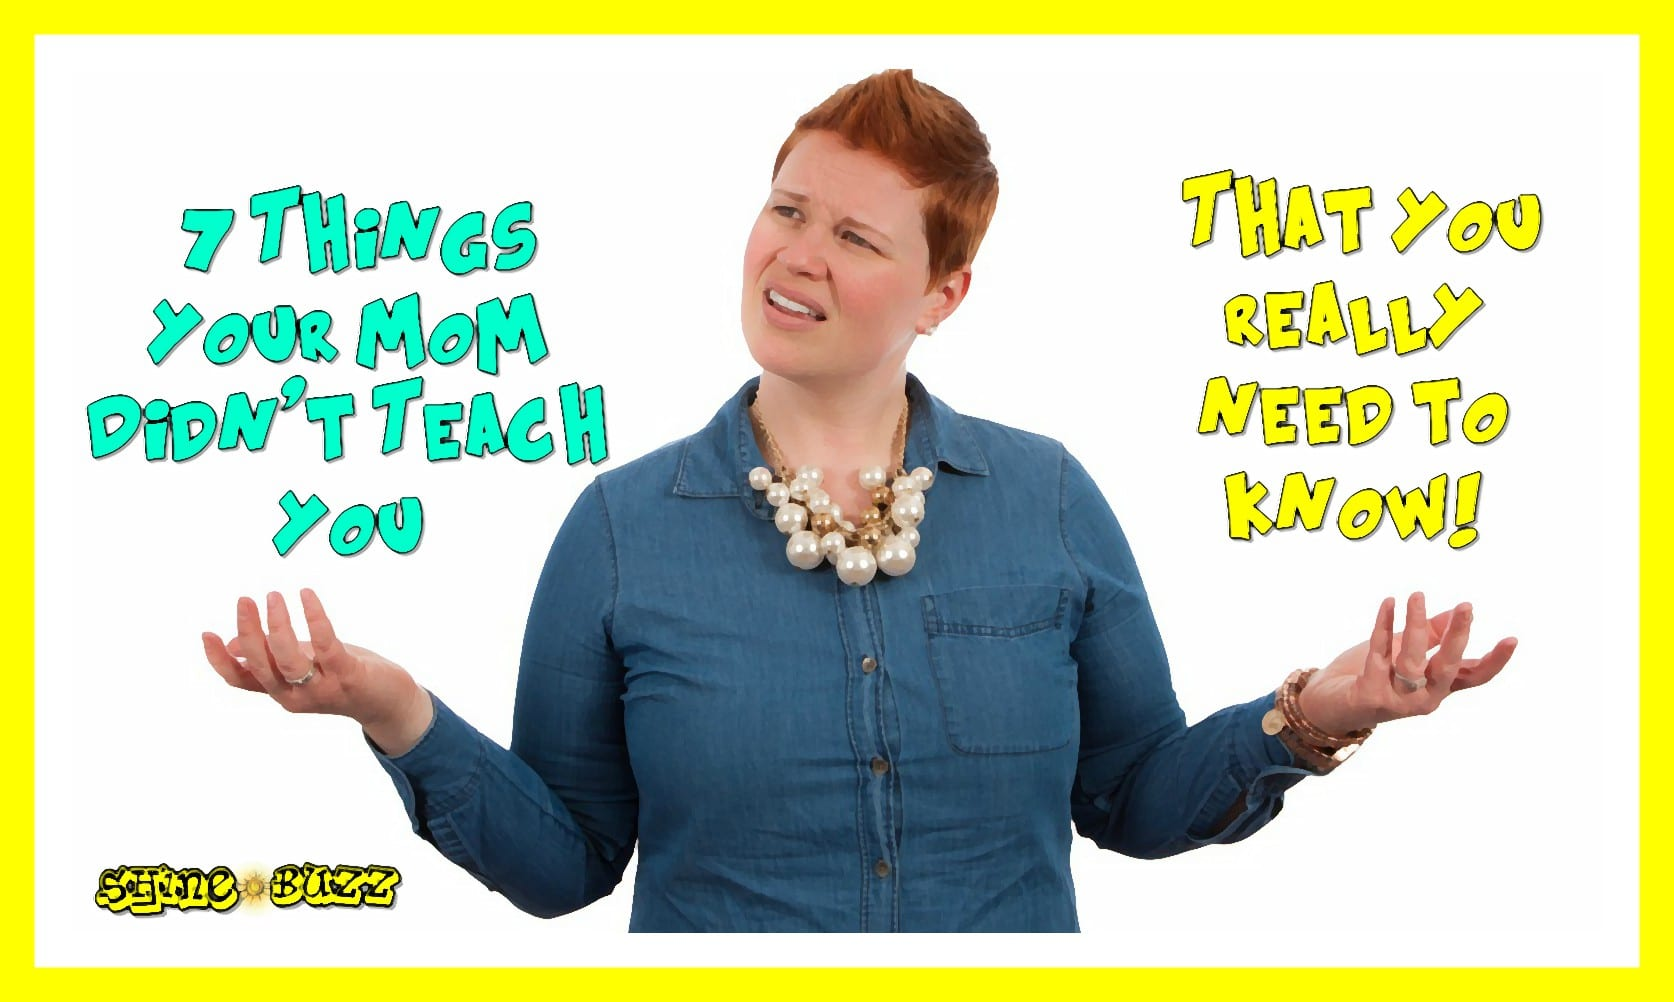 7 Things Your Mom Didn't Teach You (That You NEED to Know!)